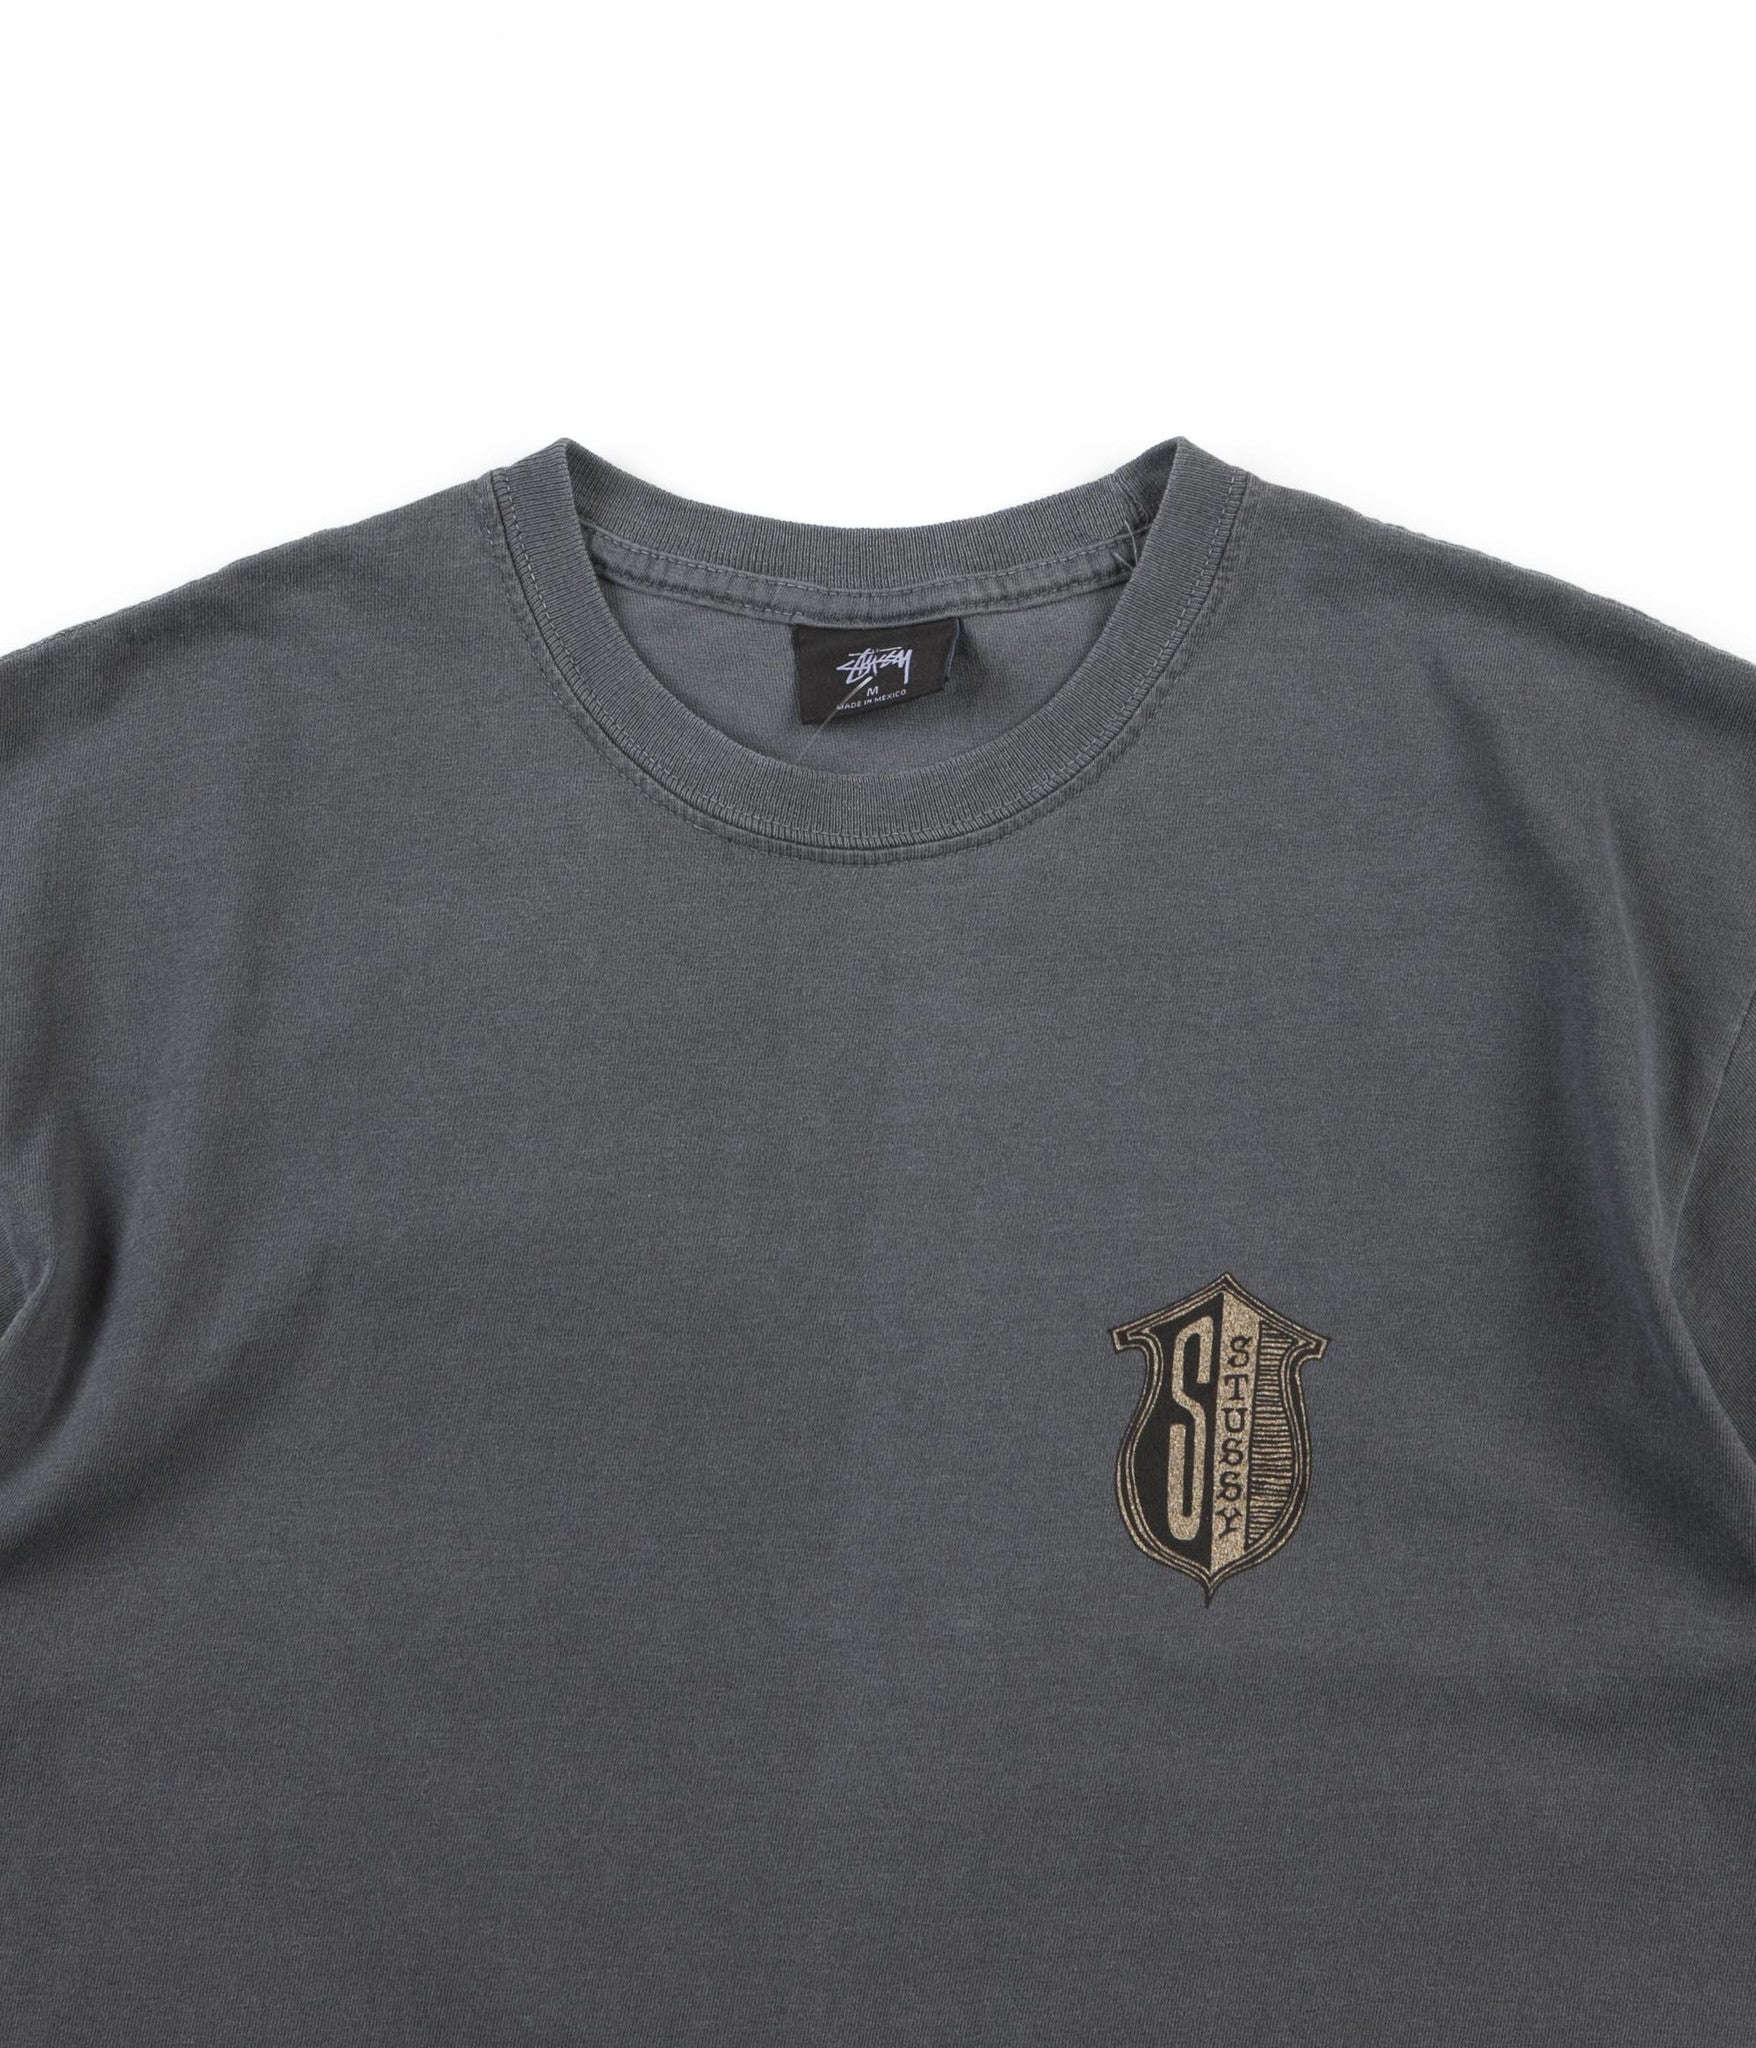 Stussy S Shield Pigment Dyed T-Shirt - Black